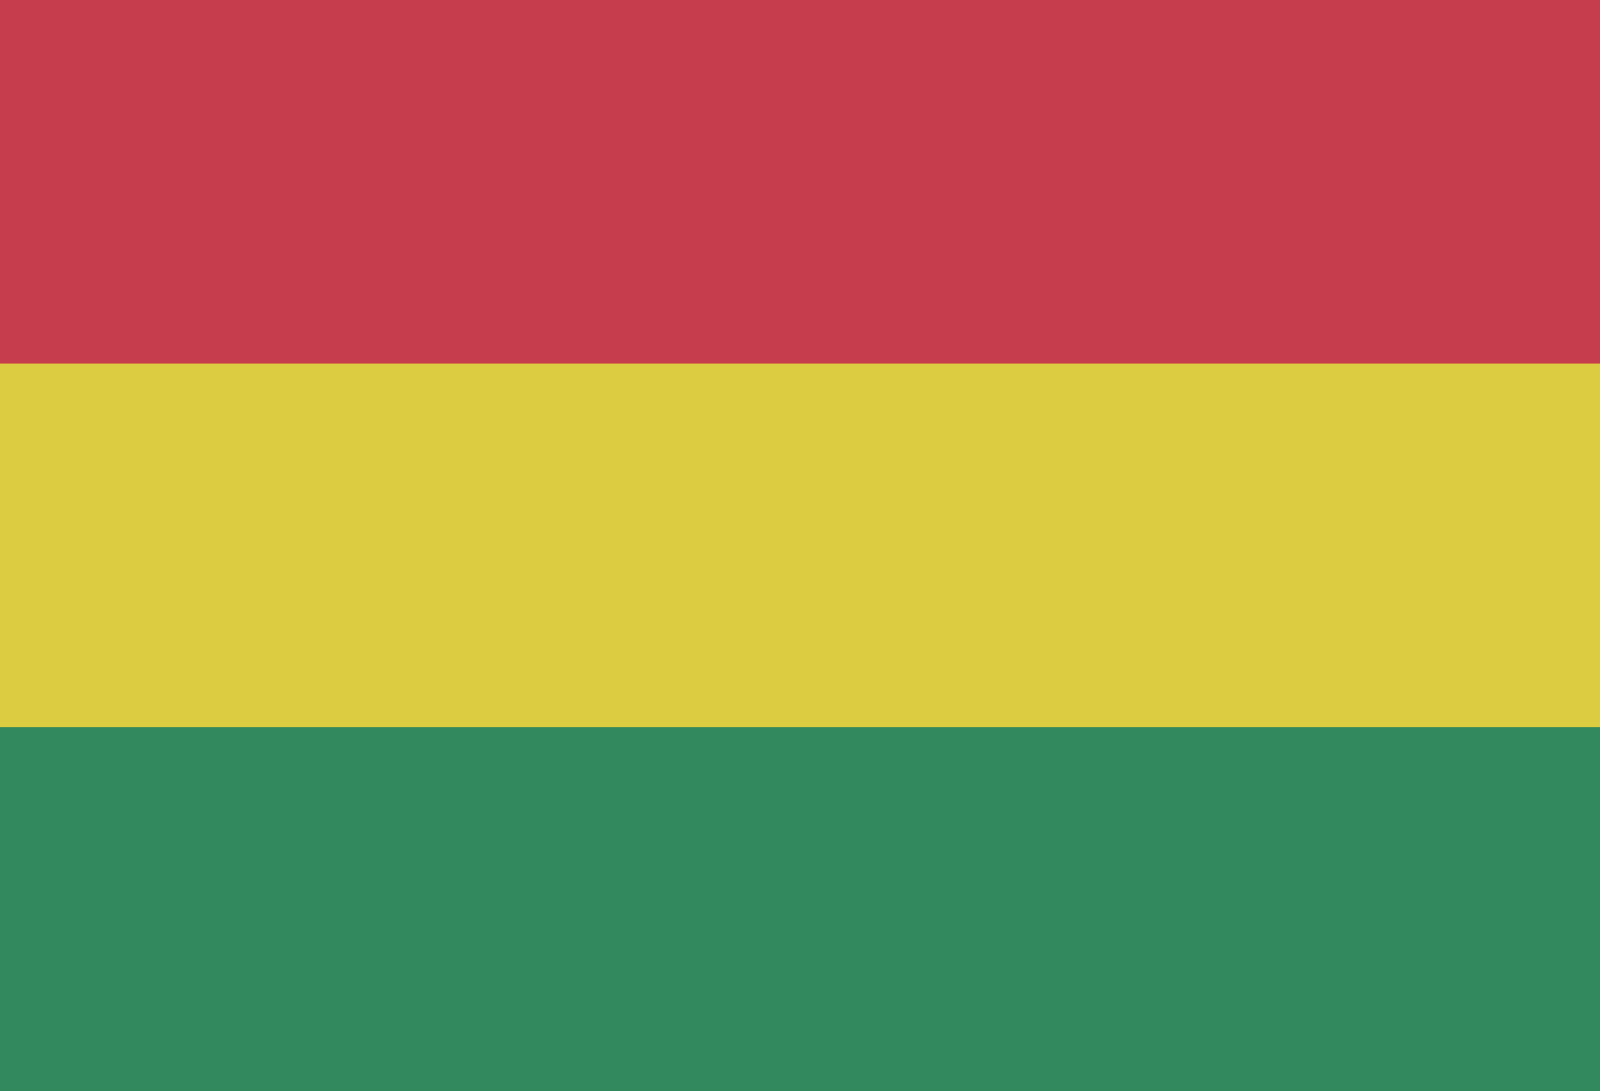 national flag of bolivia details and meaning